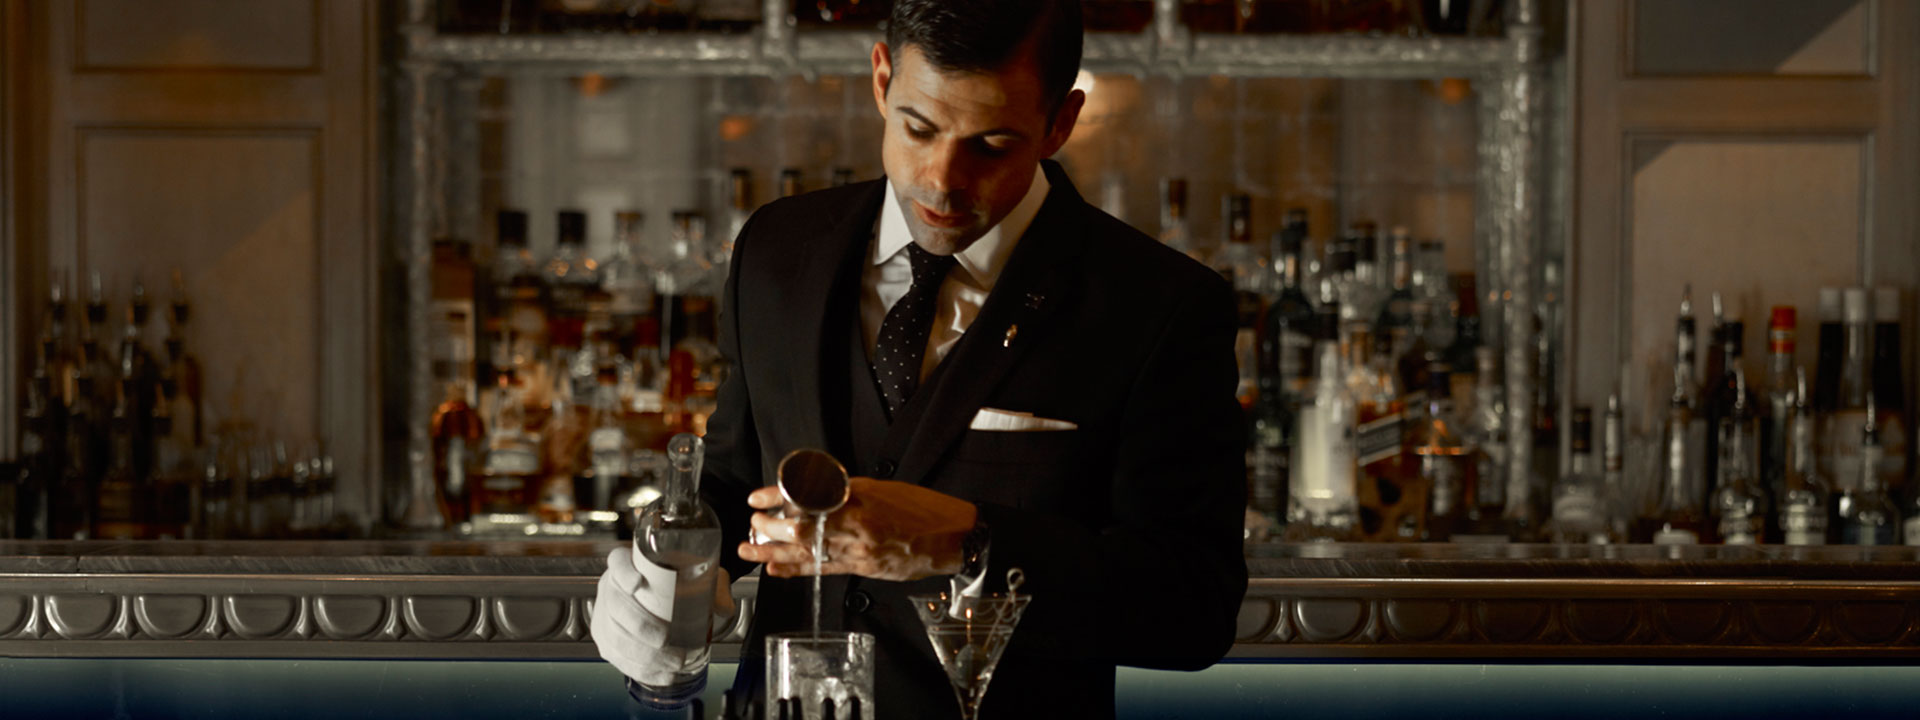 Bartender preparing a cocktail at The Connaught